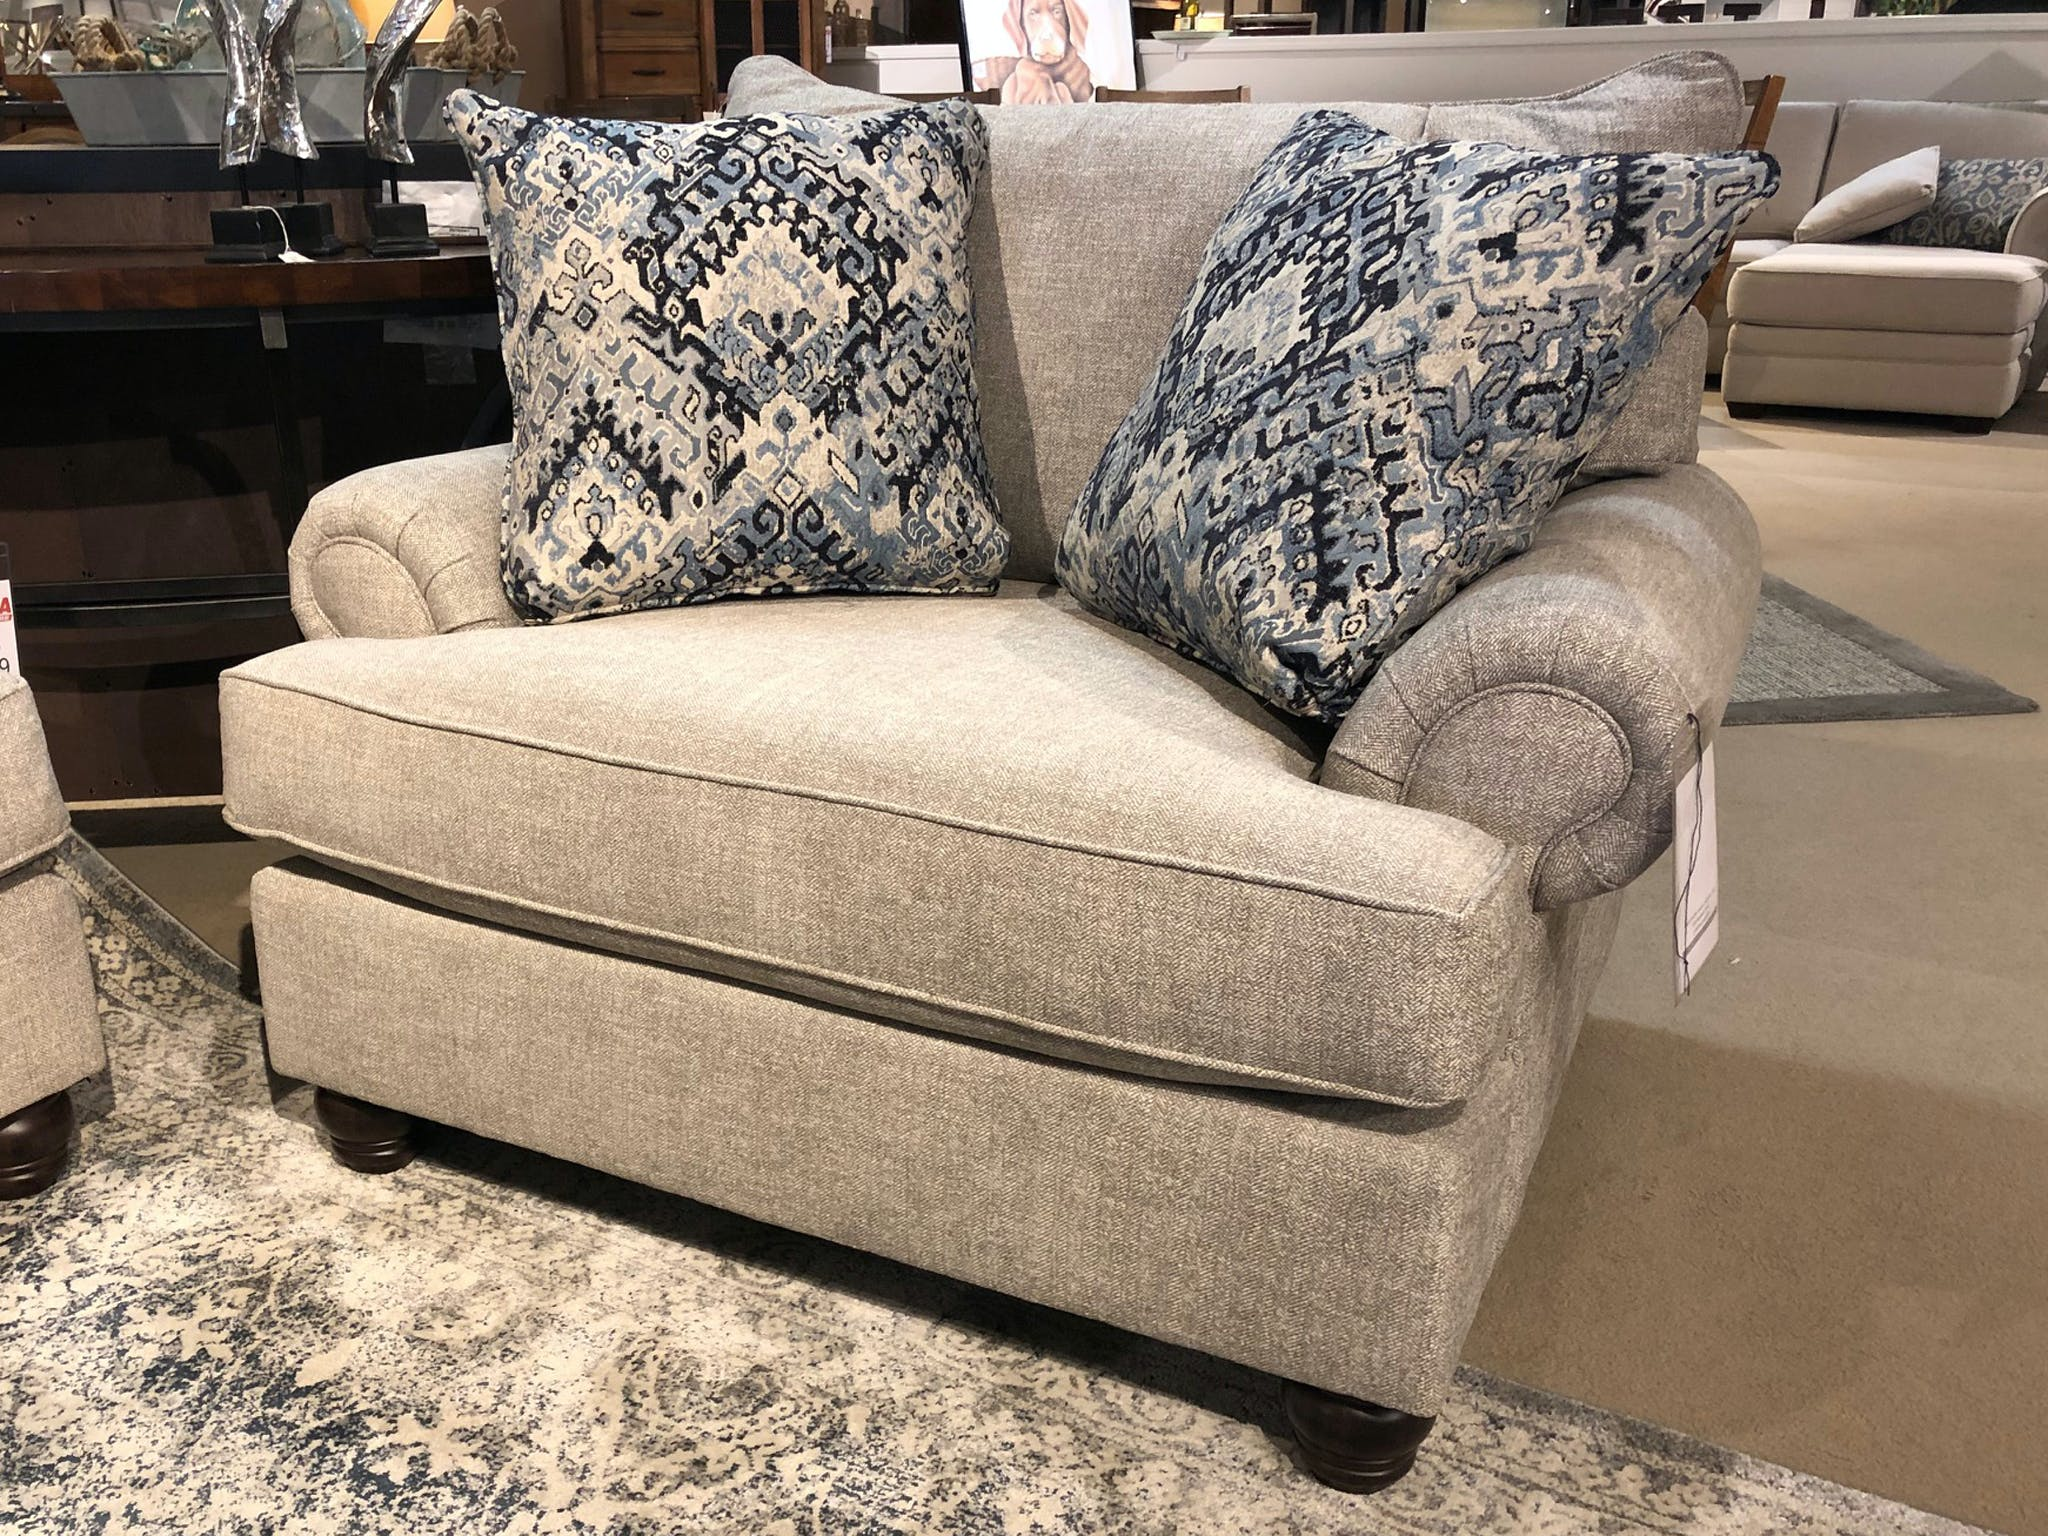 Cozy Life Chair And A Half With Pillows 857453 Talsma Furniture Hudsonville Holland Byron